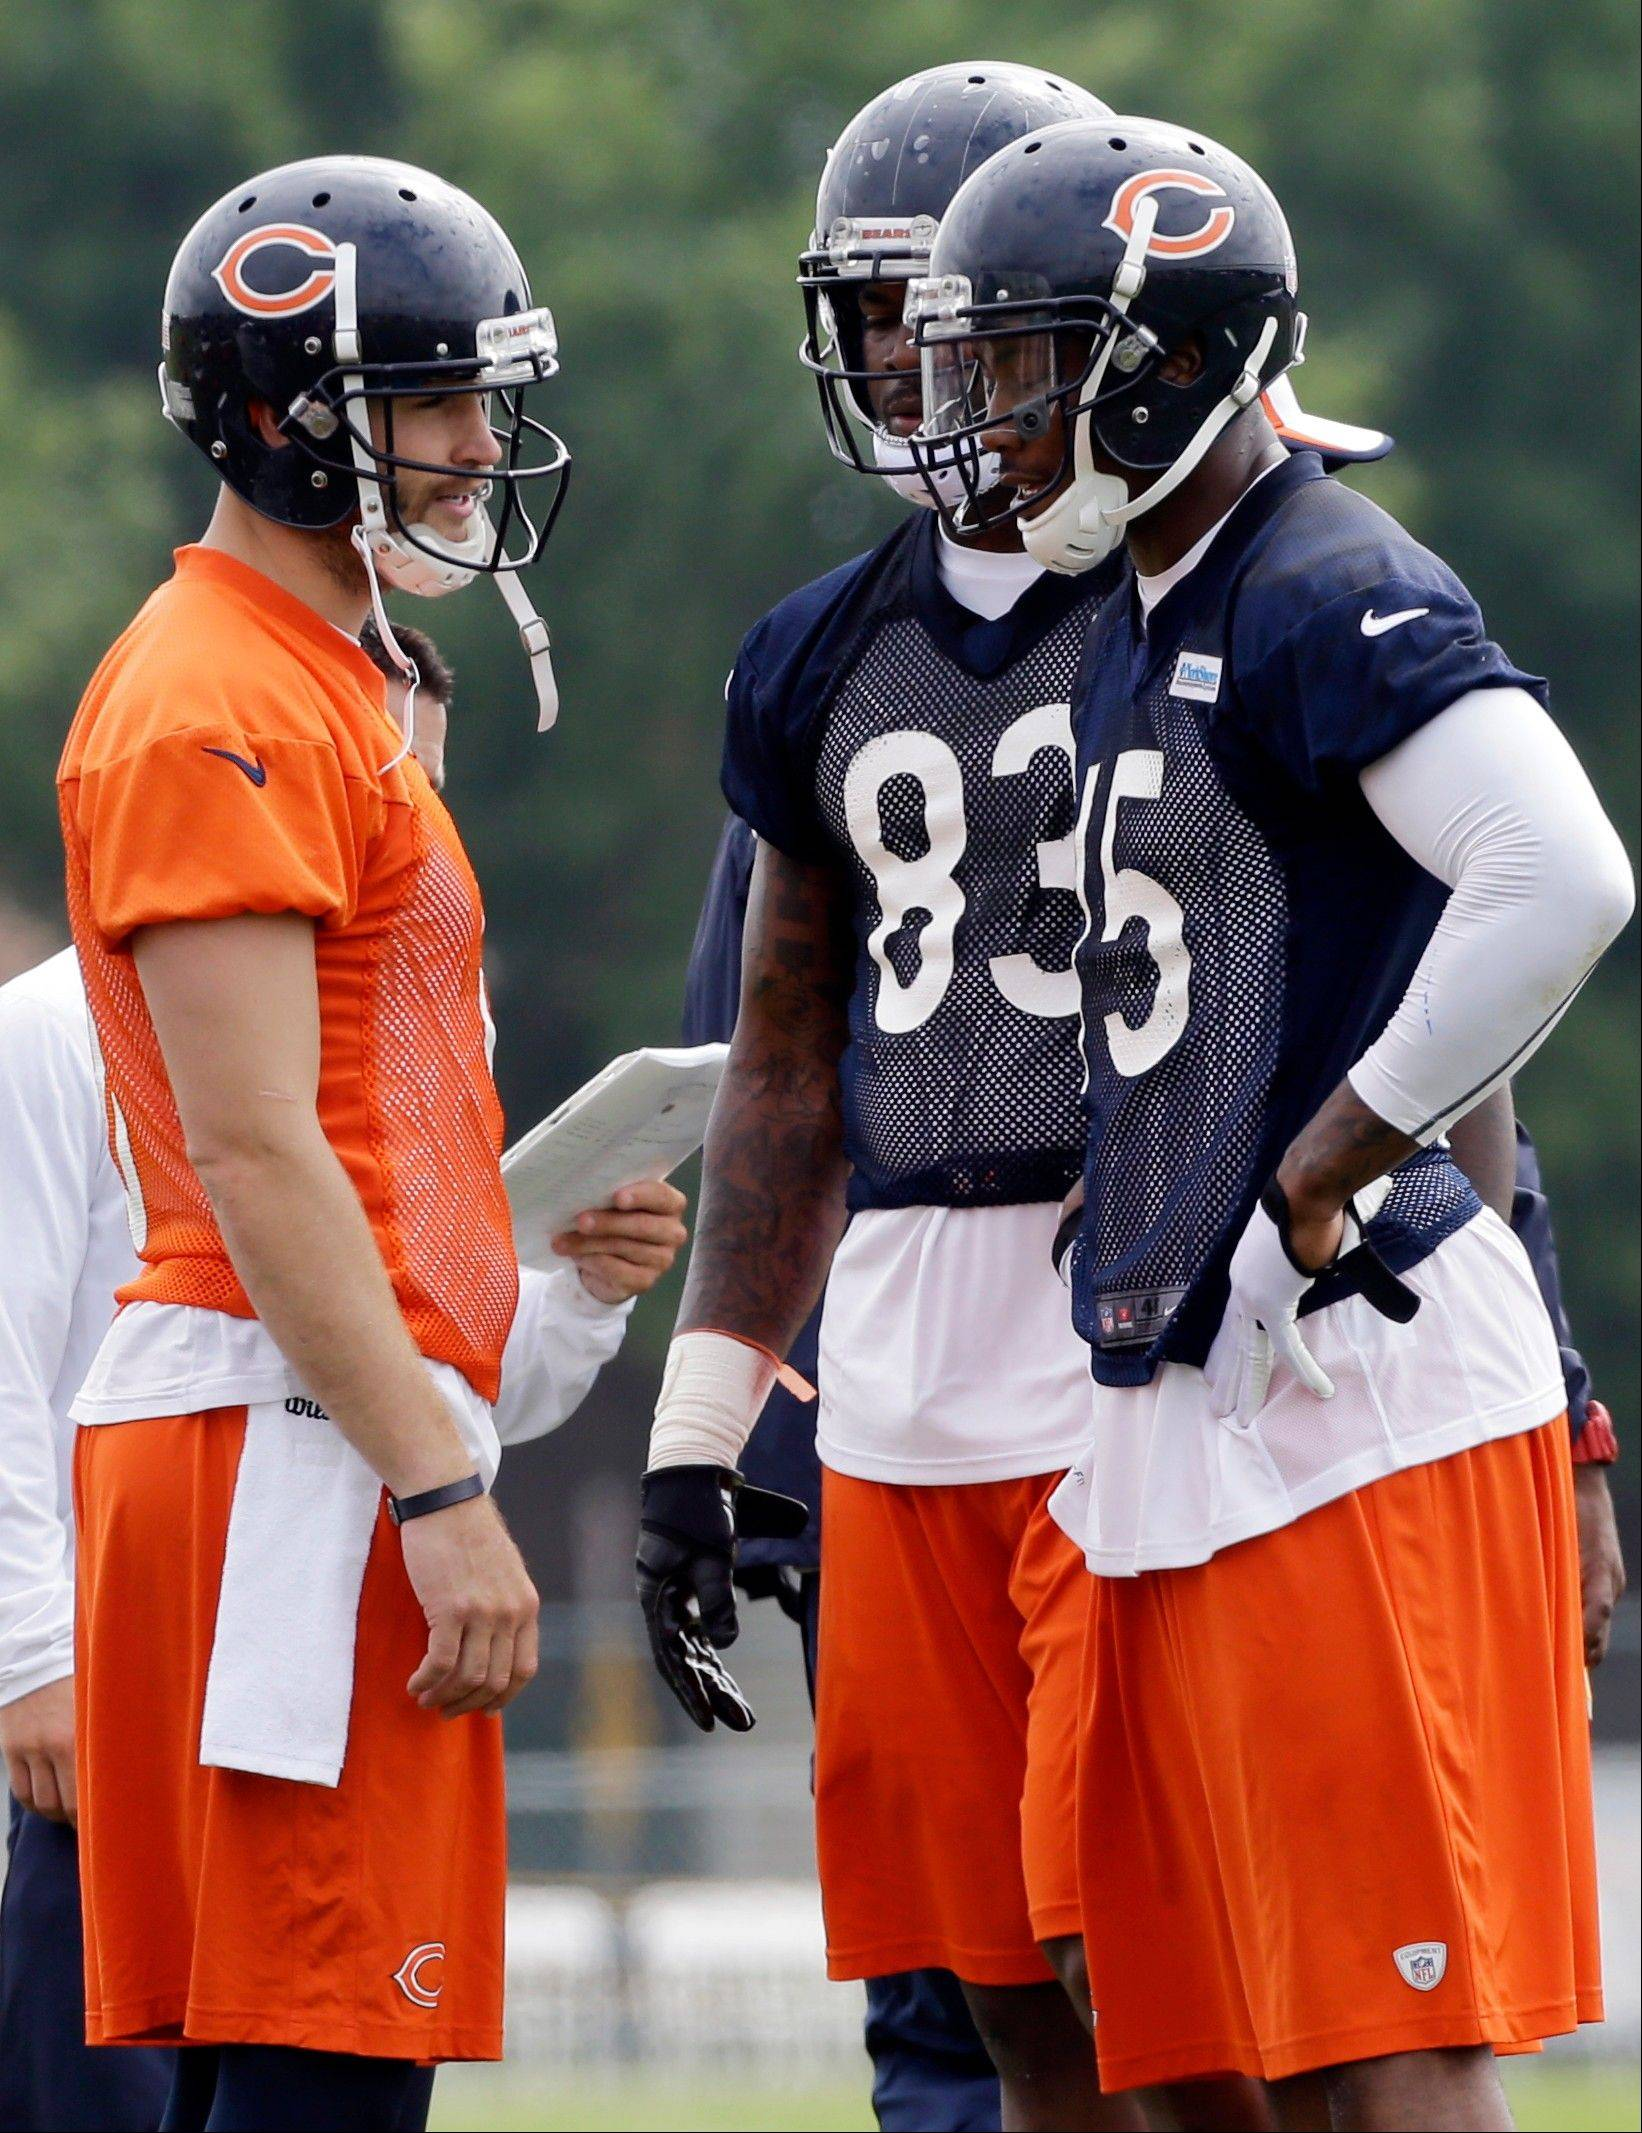 Bears quarterback Jay Cutler, left, has some big options in the red zone with 6-foot-4 wide receiver Brandon Marshall (15) and 6-6 tight end Martellus Bennett (83). He'll also have 6-3 WR Alshon Jeffery to target as well.